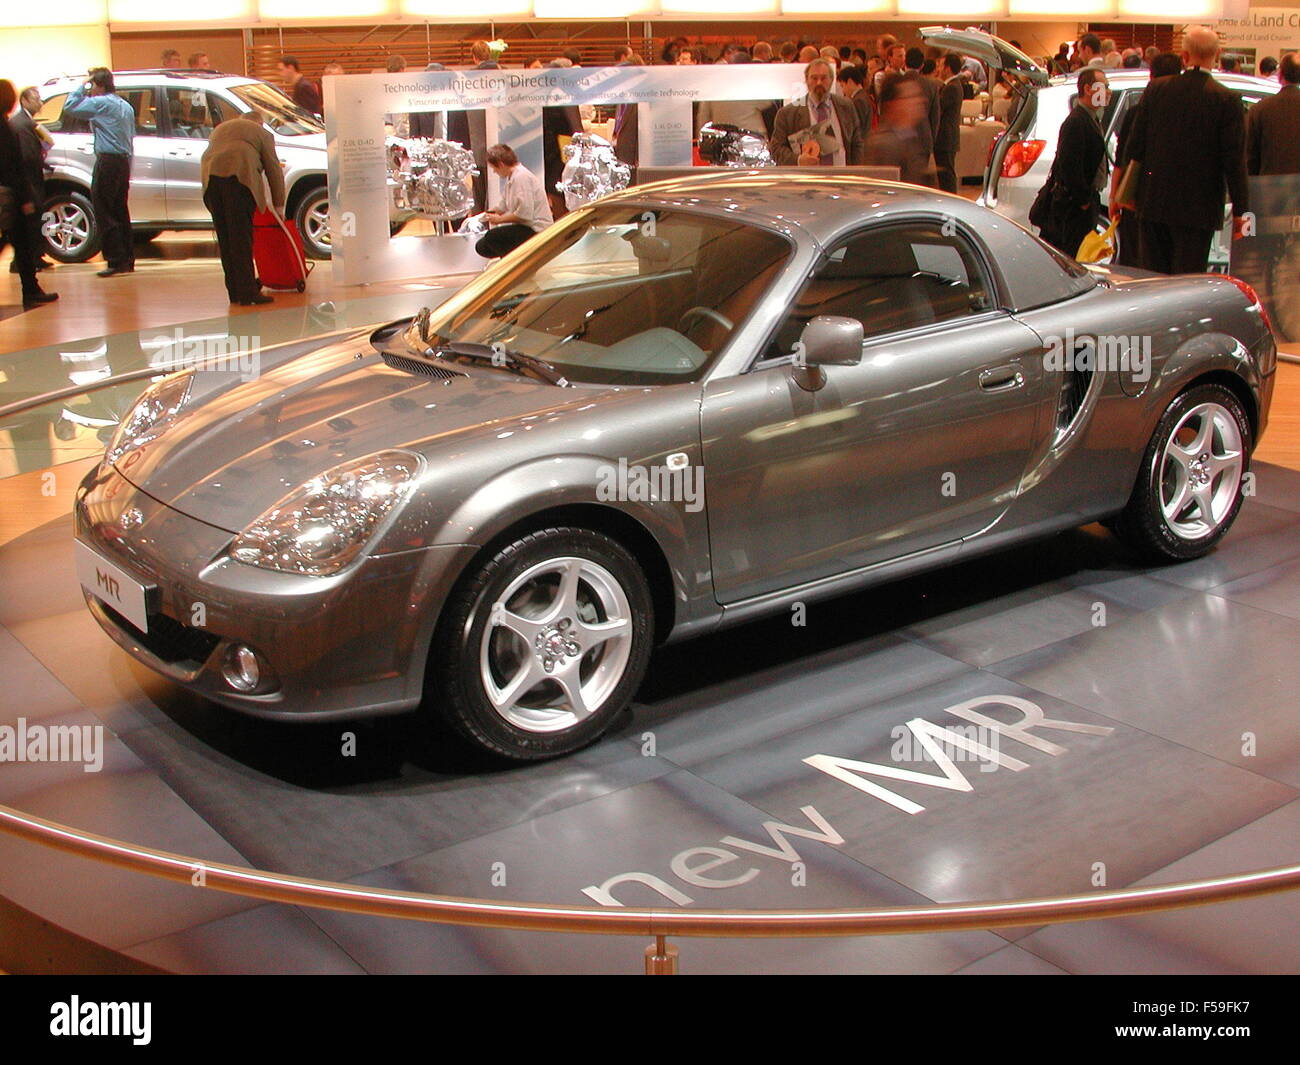 hight resolution of toyota mr2 facelift as shown at the paris motorshow 2002 stock image